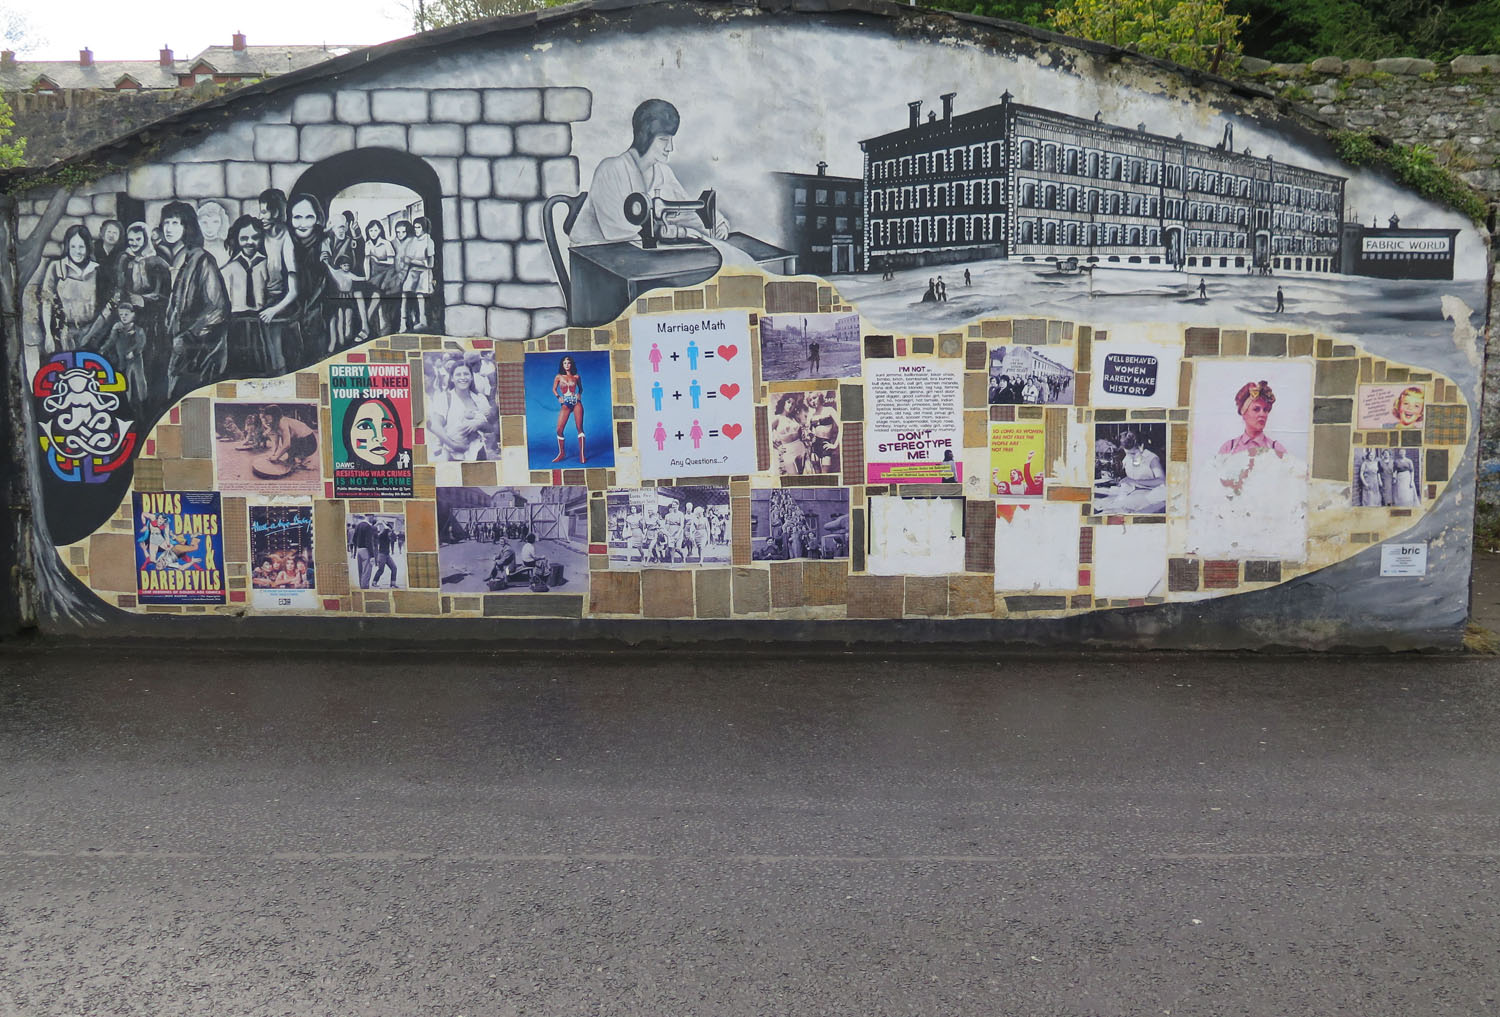 Northern-Ireland-Derry-Londonderry-Wall-Celebrating-Women